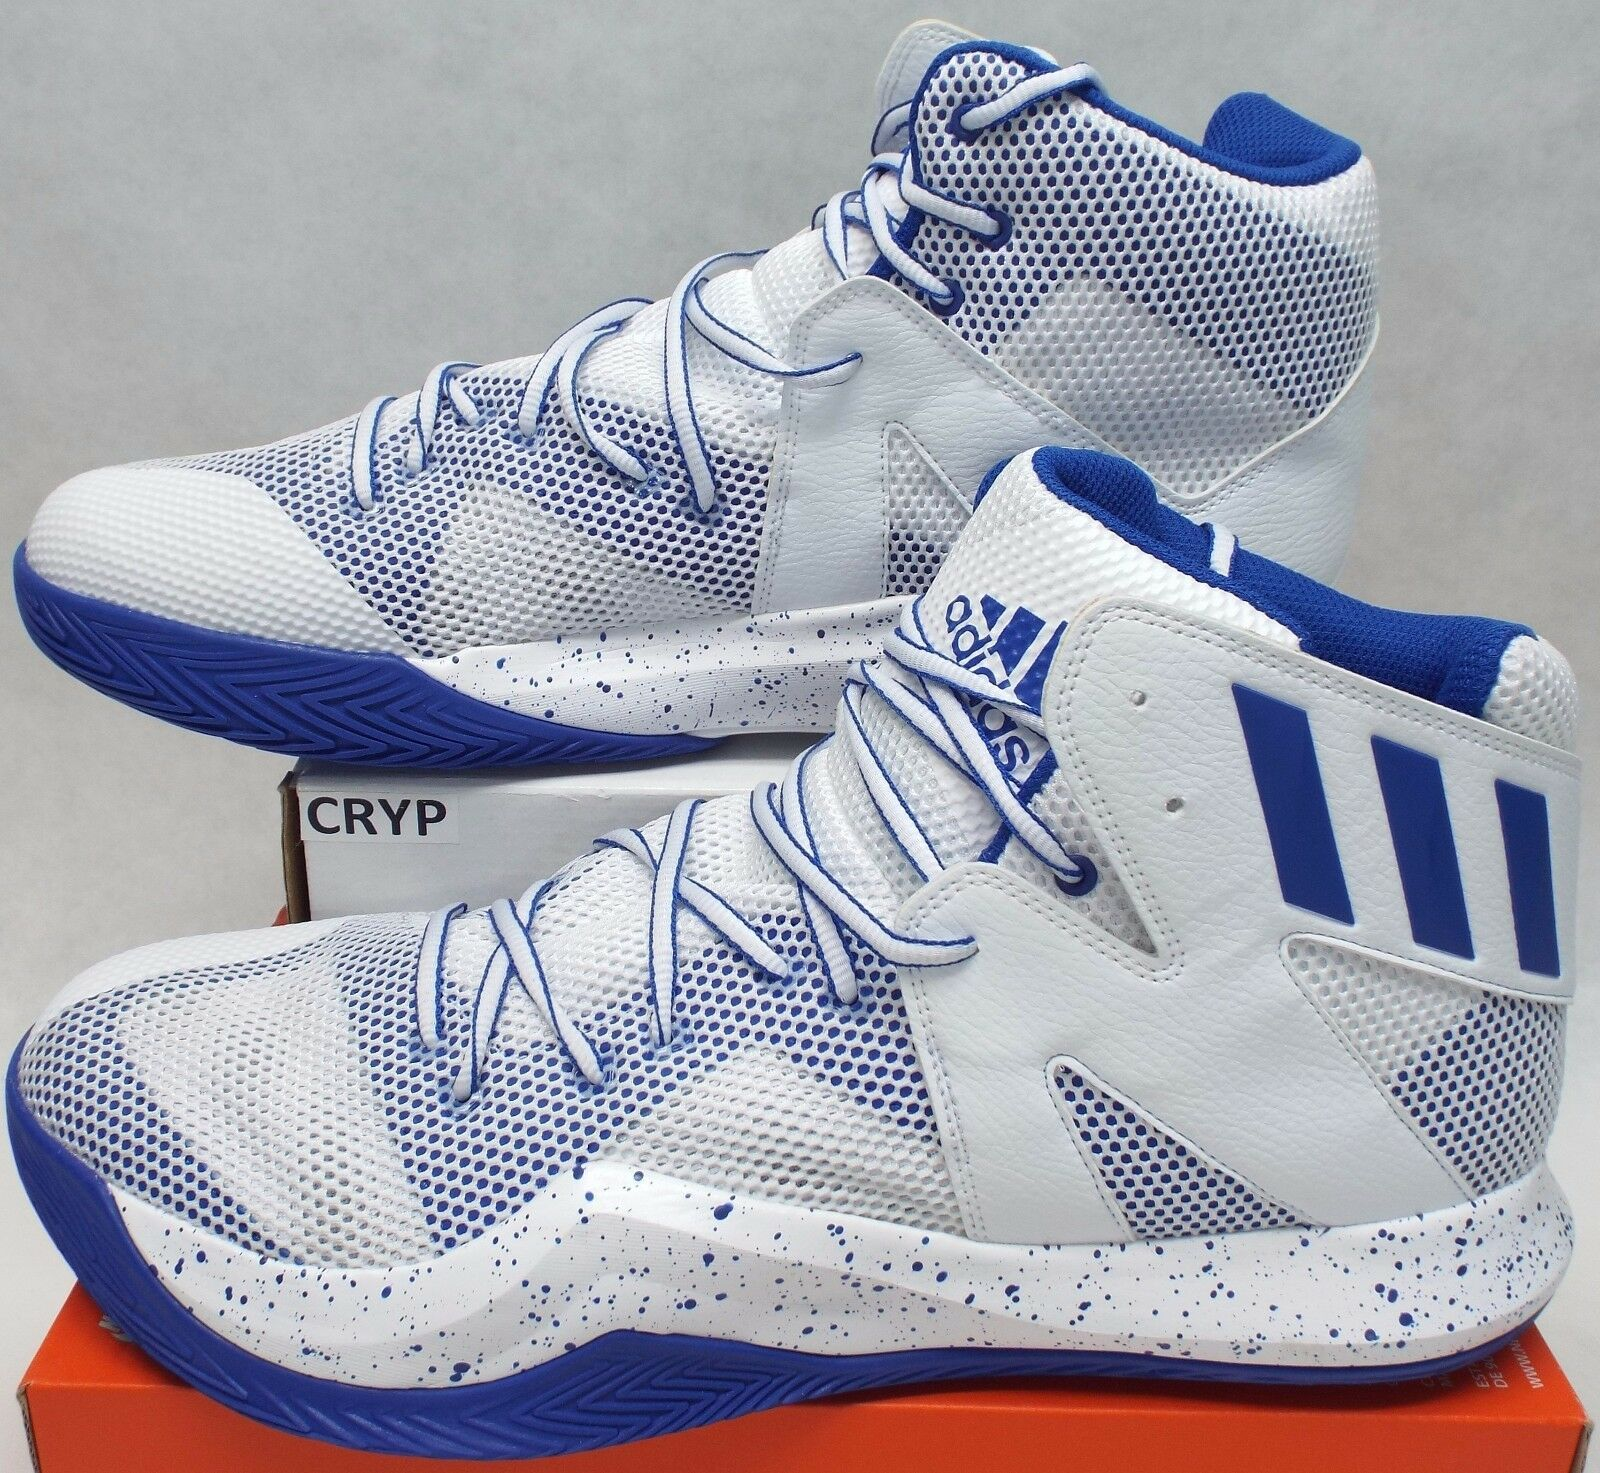 New Mens 16 ADIDAS Crazy Bounce Mid White Blue Basketball Shoes Price reduction